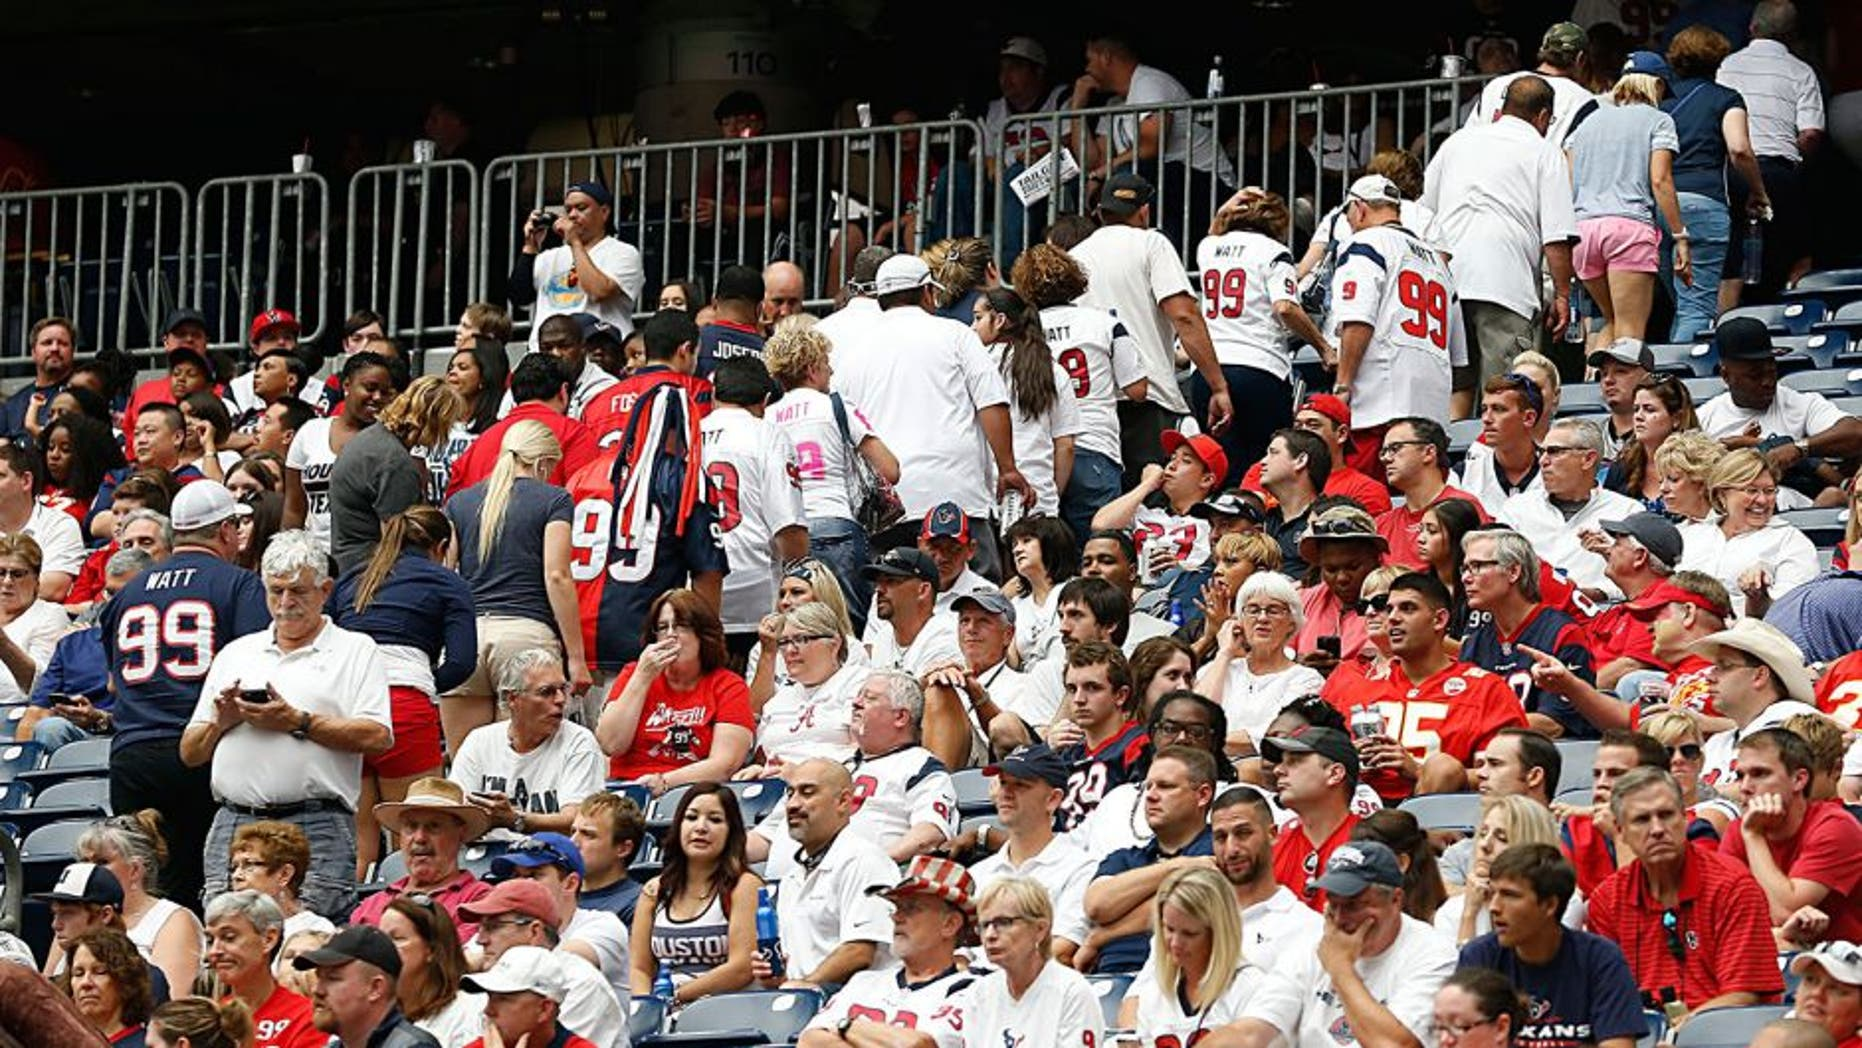 HOUSTON, TX - SEPTEMBER 13: Houston Texans fans leave early while the Texans play the Kansas City Chiefs in the second half in the second quarter in a NFL game on September 13, 2015 at NRG Stadium in Houston, Texas. (Photo by Bob Levey/Getty Images)